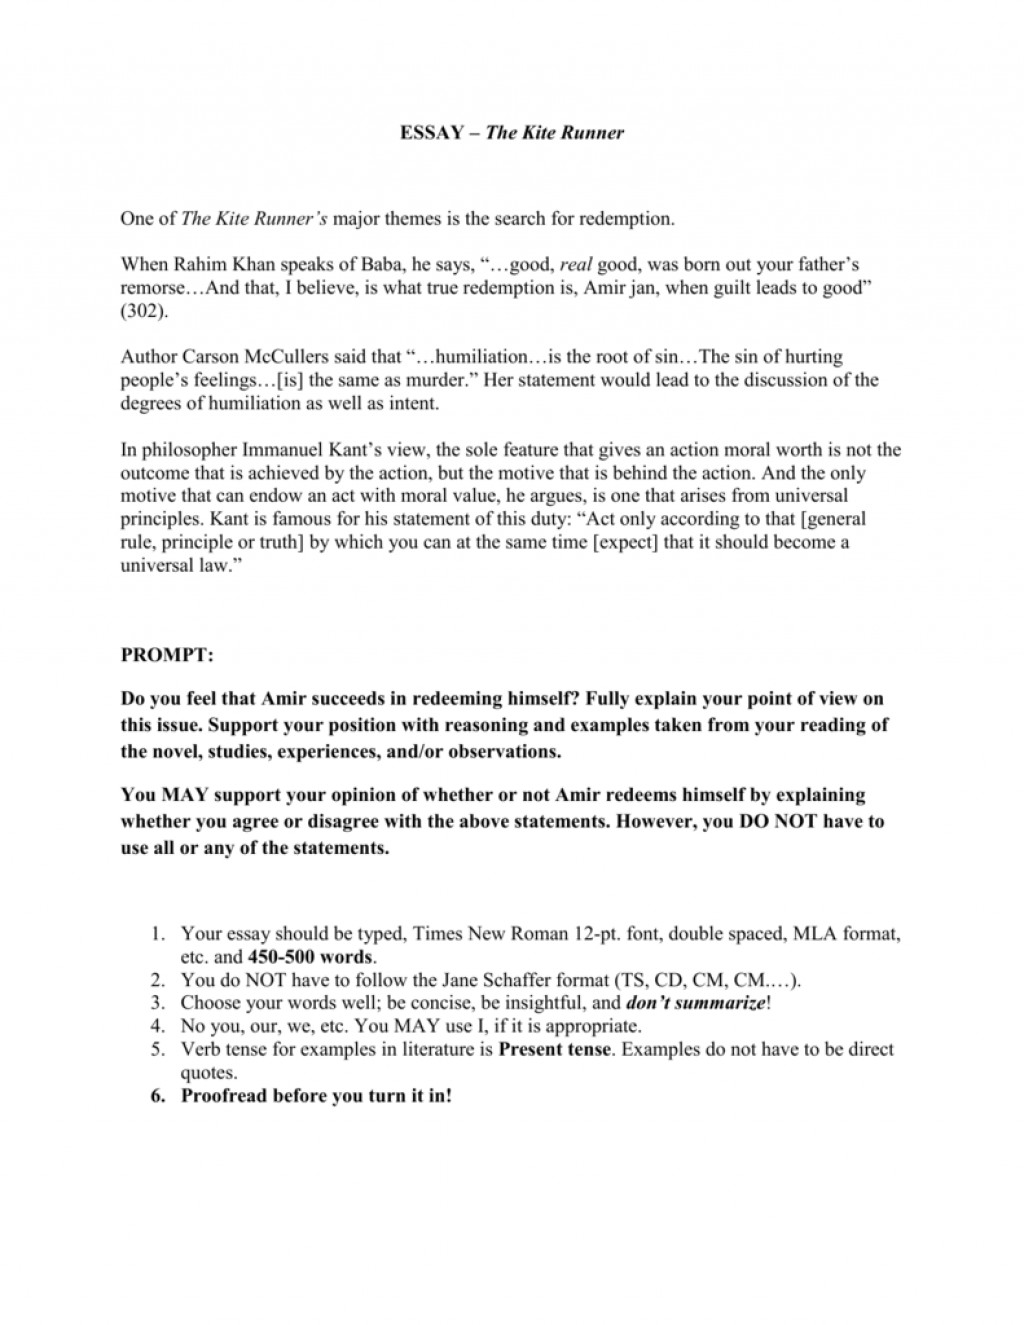 003 The Kite Runner Essay Example 008813033 1 Unforgettable Discussion Questions And Answers Literary Thesis Statements Book Large